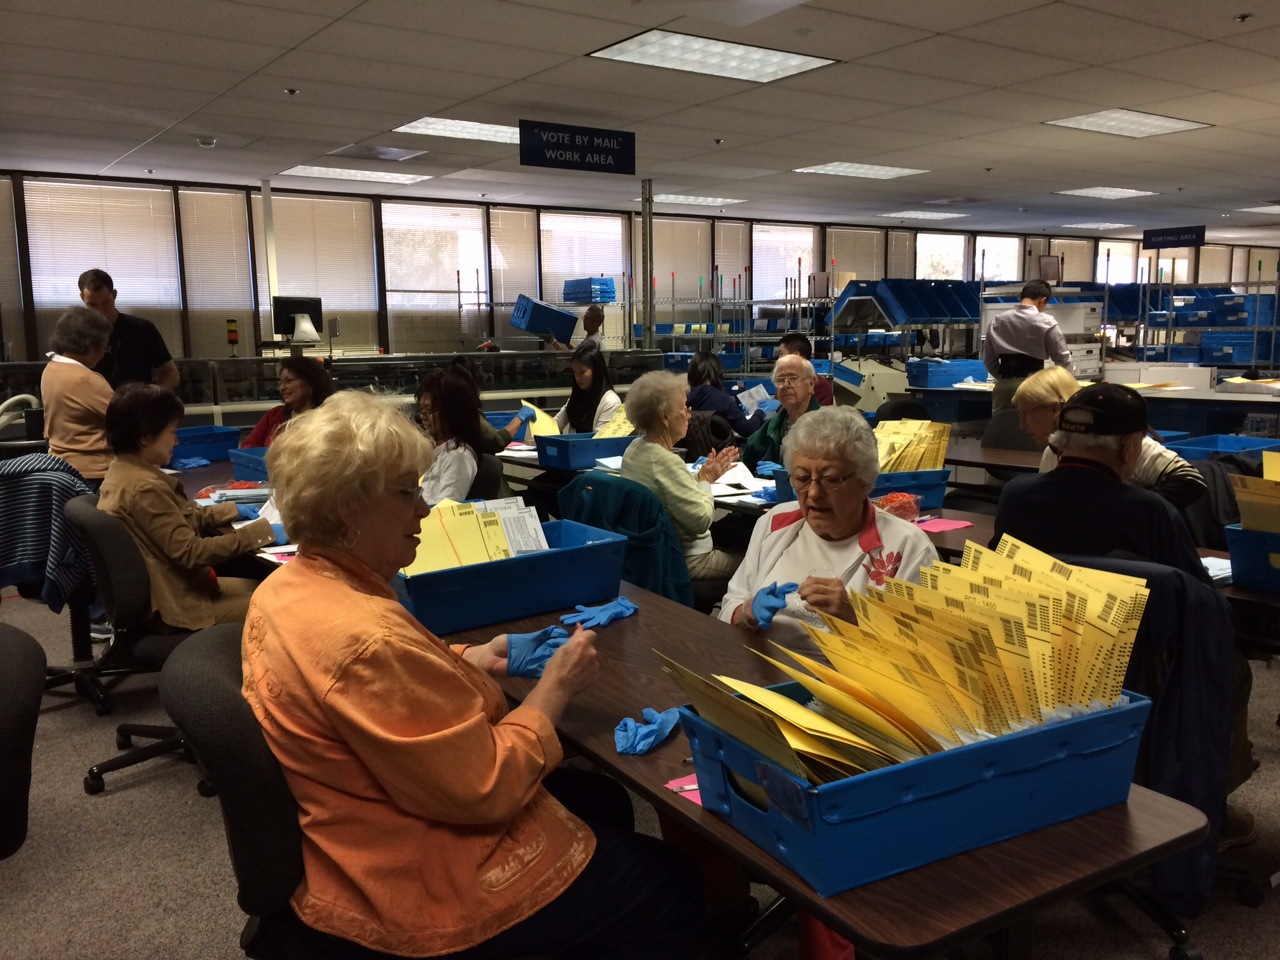 It takes weeks to sort through the vote by mail ballots before election day. (Beth Willon/KQED)